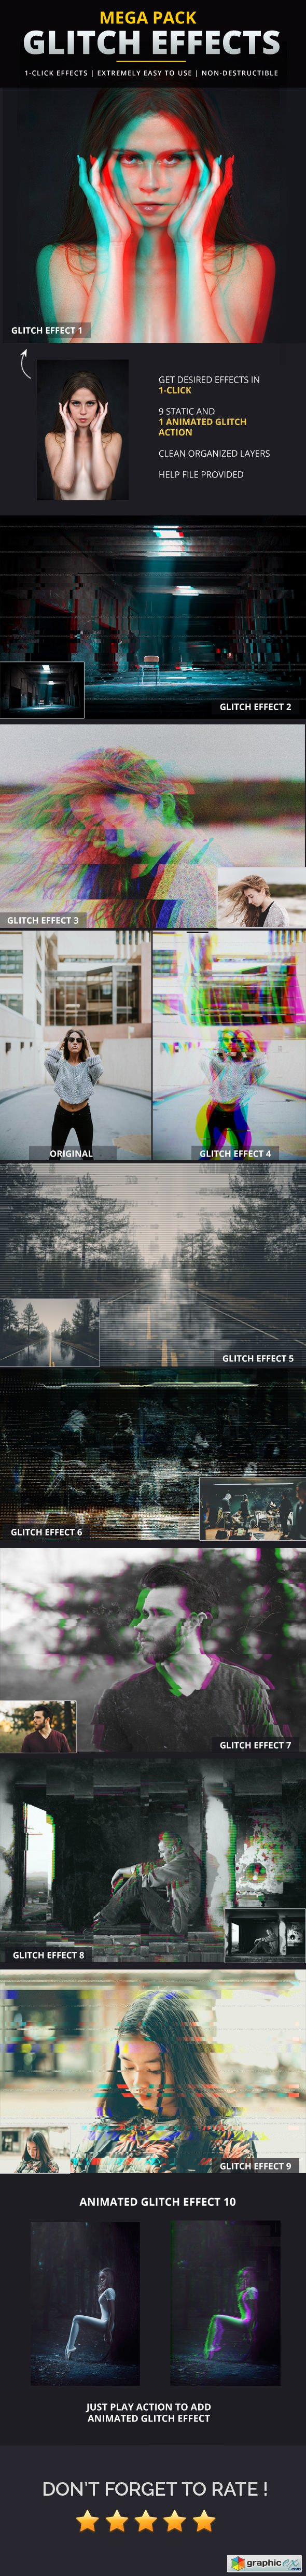 Graphicriver Glitch Effects Mega Pack